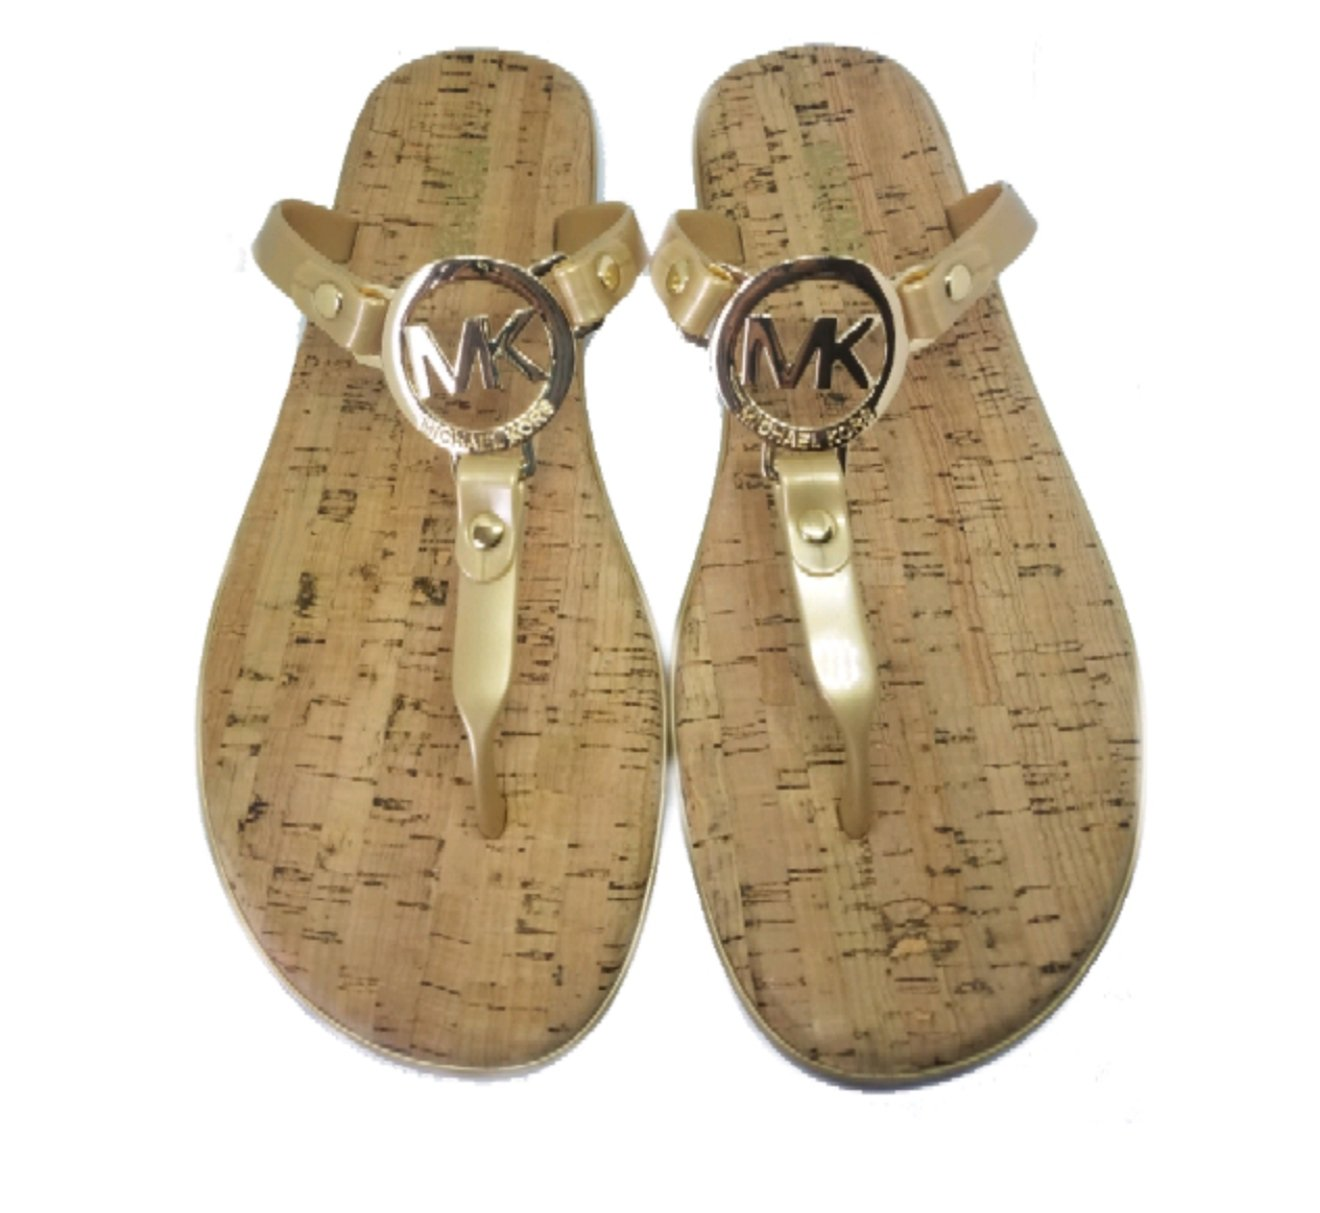 59578b2d4676 Galleon - Michael Kors MK Charm Cork Bottom Jelly Flip Flop